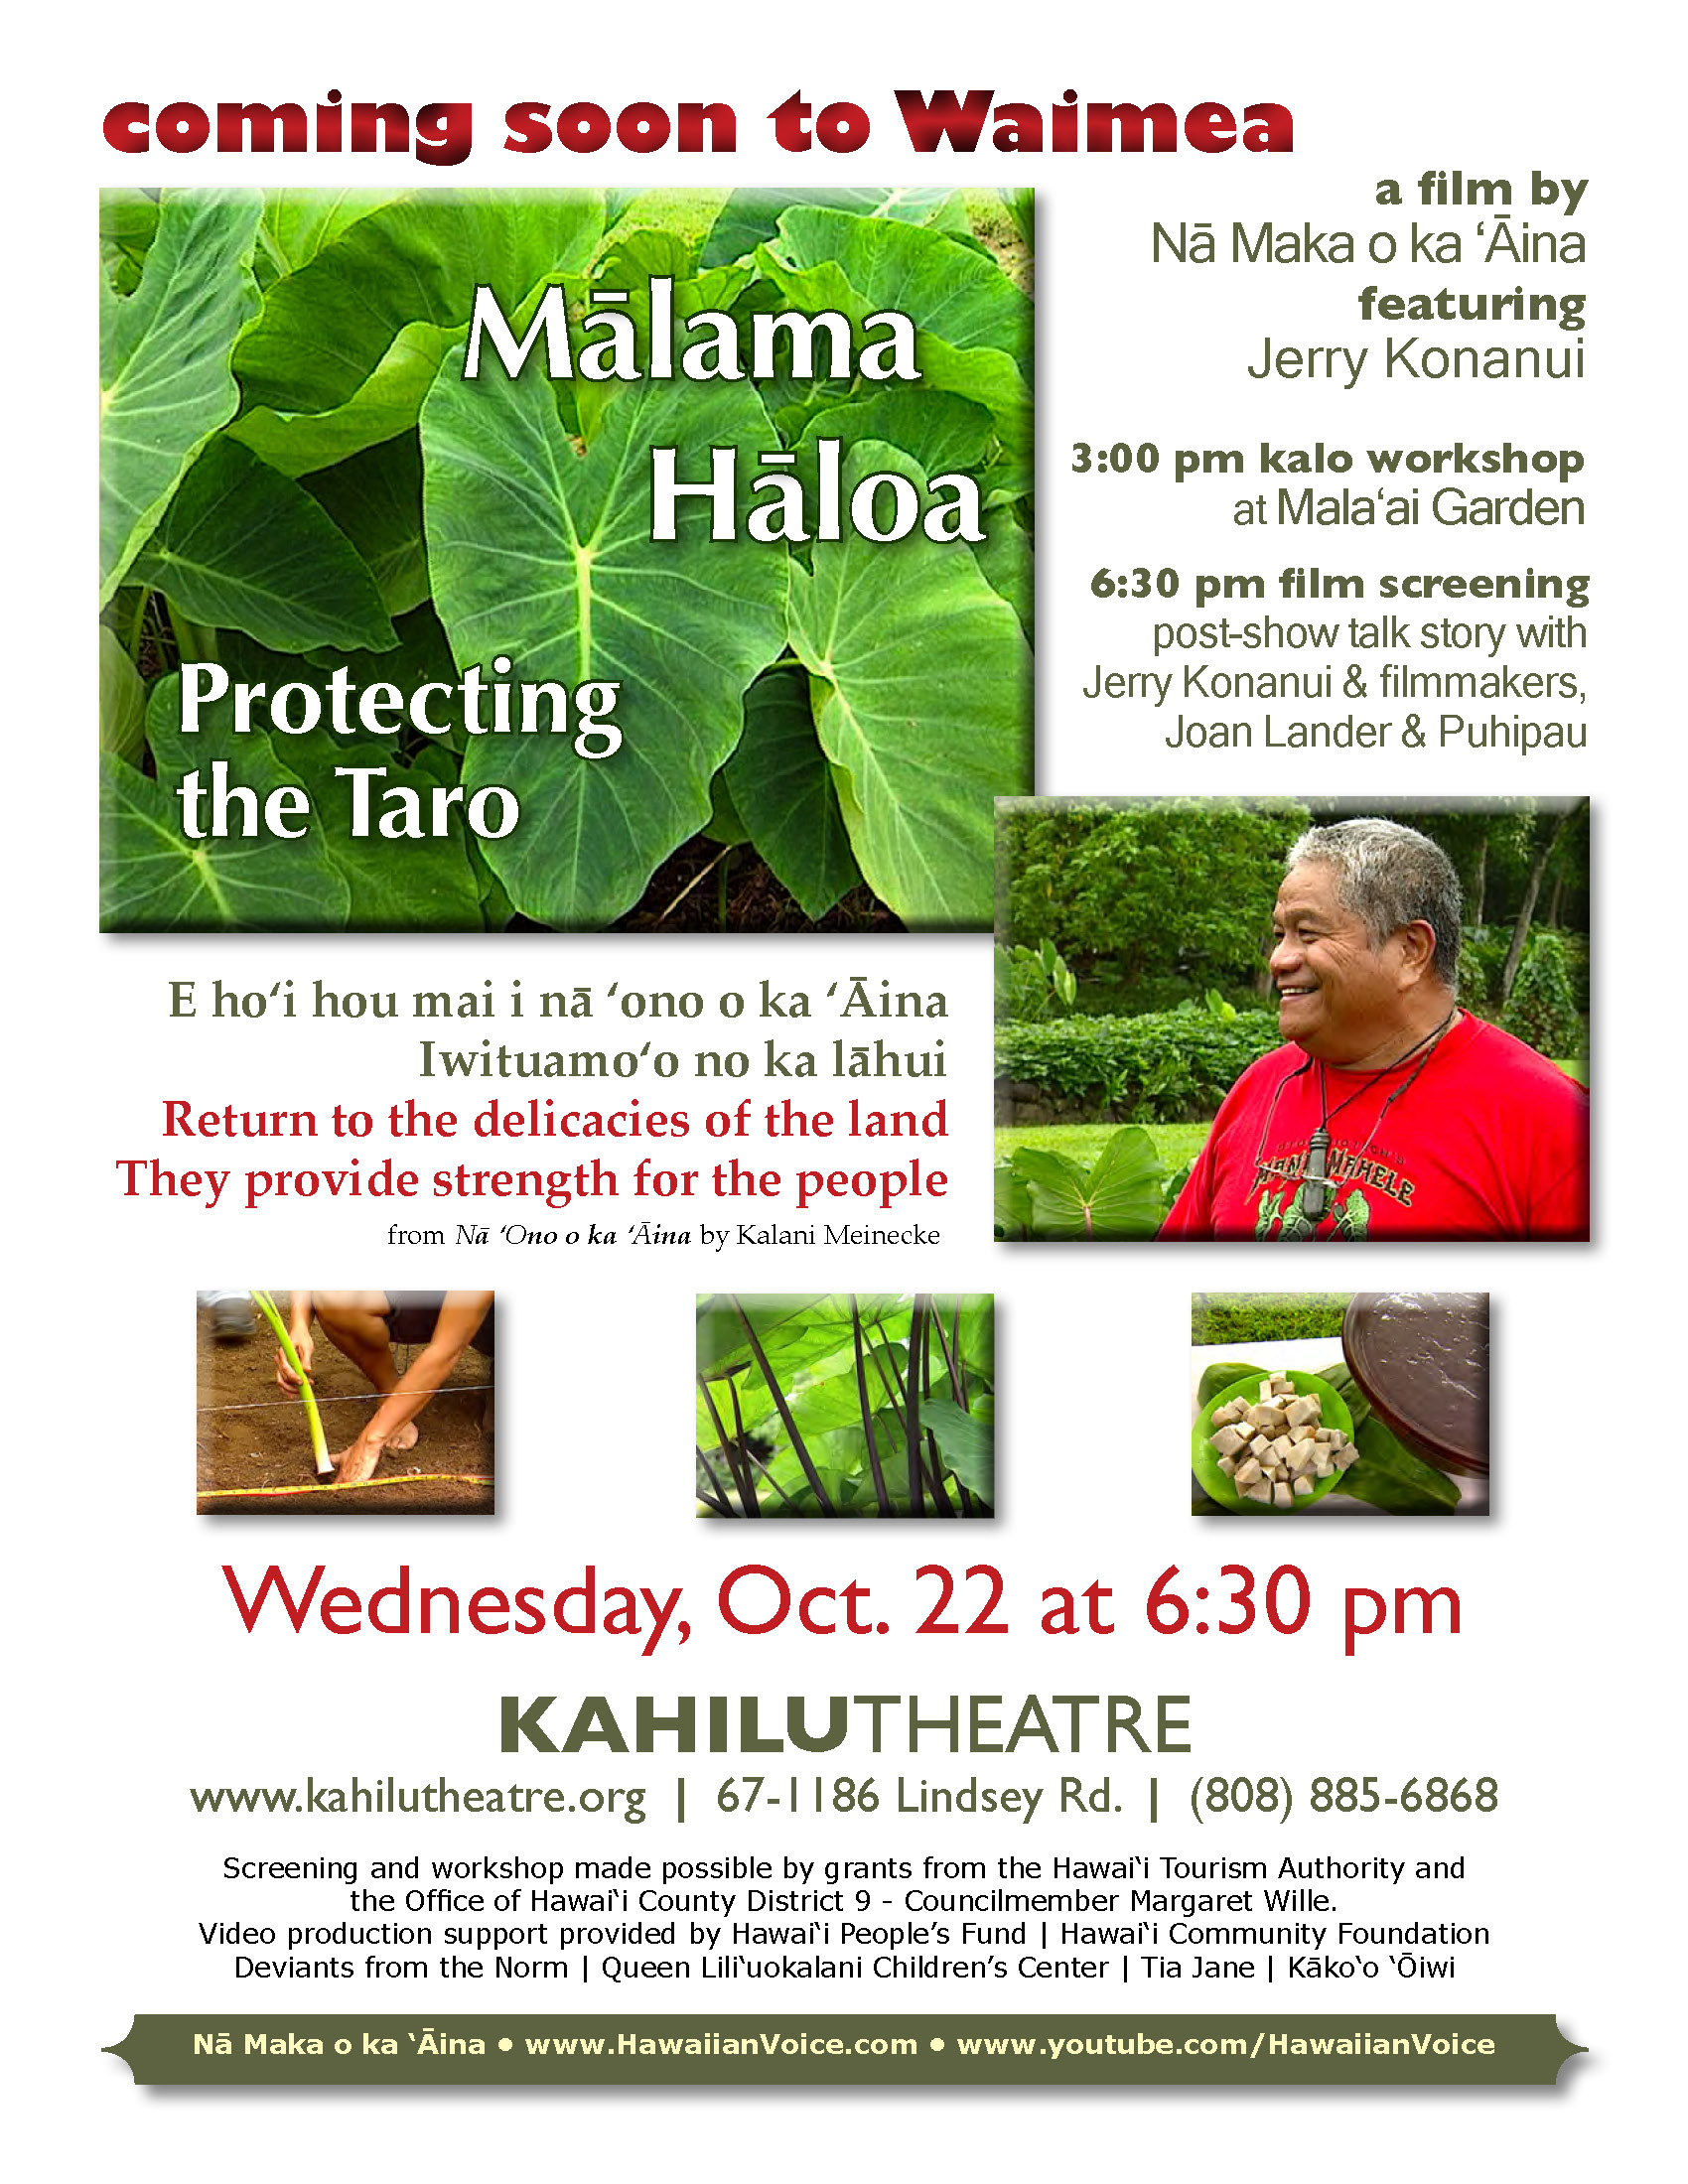 Malama_Haloa_Kahilu_Theatre_FLYER_REVISED_10.11.14_sm